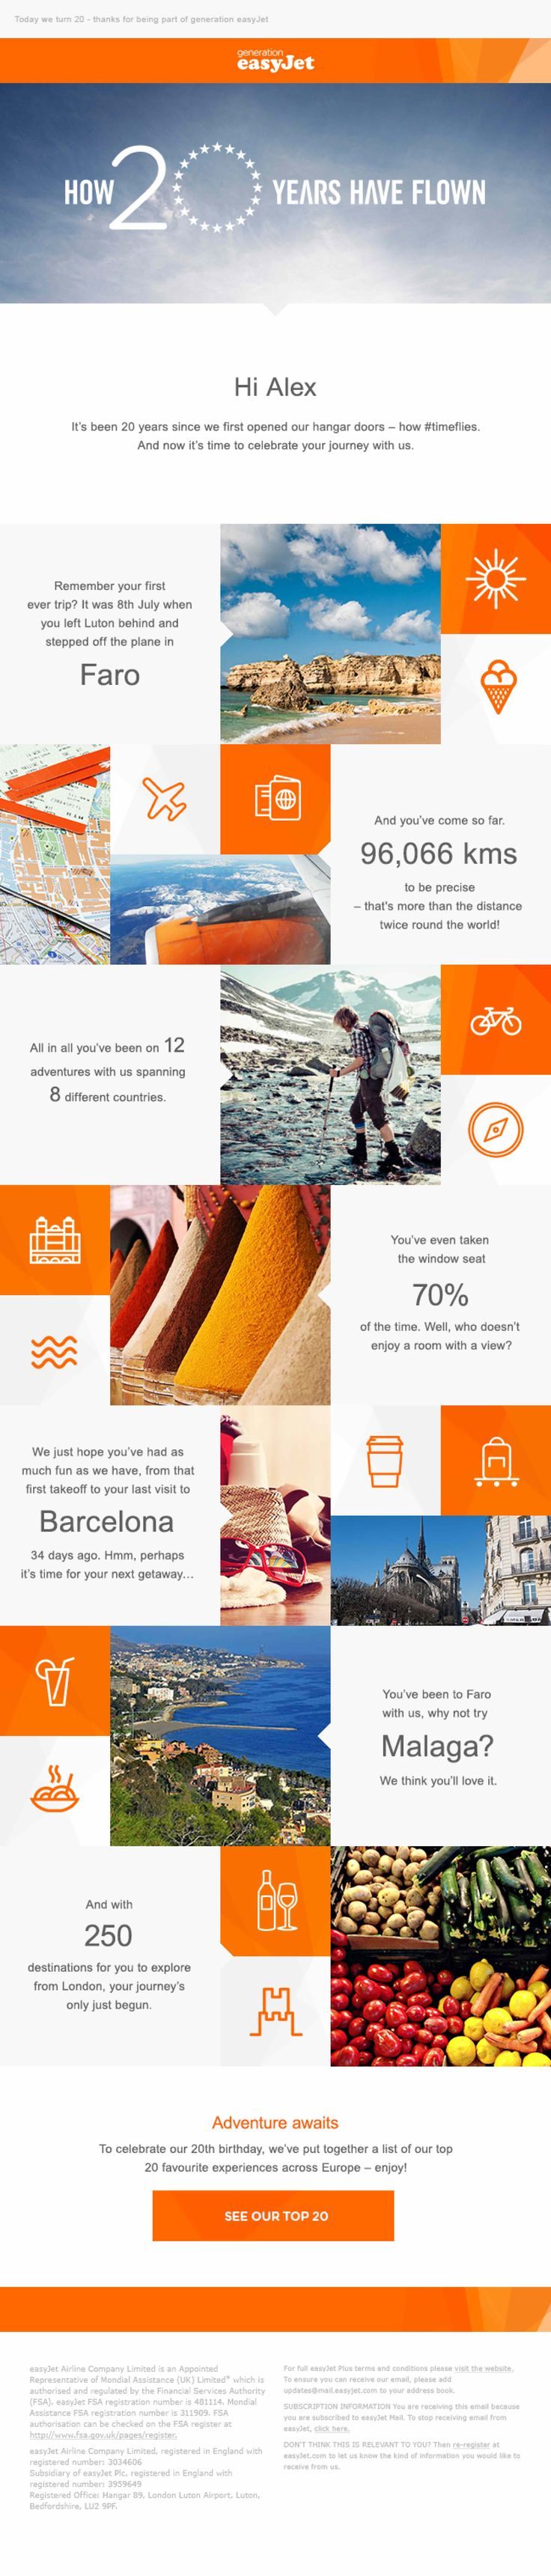 easyJet have used customer data to tell emotional anniversary stories via an eDM campaign. Entirely personalised emails were sent with dynamic copy, images and links to tell each customer's story from their first flight to their future flights. Emails were built using a series of 12 modules and open rates were over 100% more than the average easyJet newsletter – with 25% higher click-through rates.